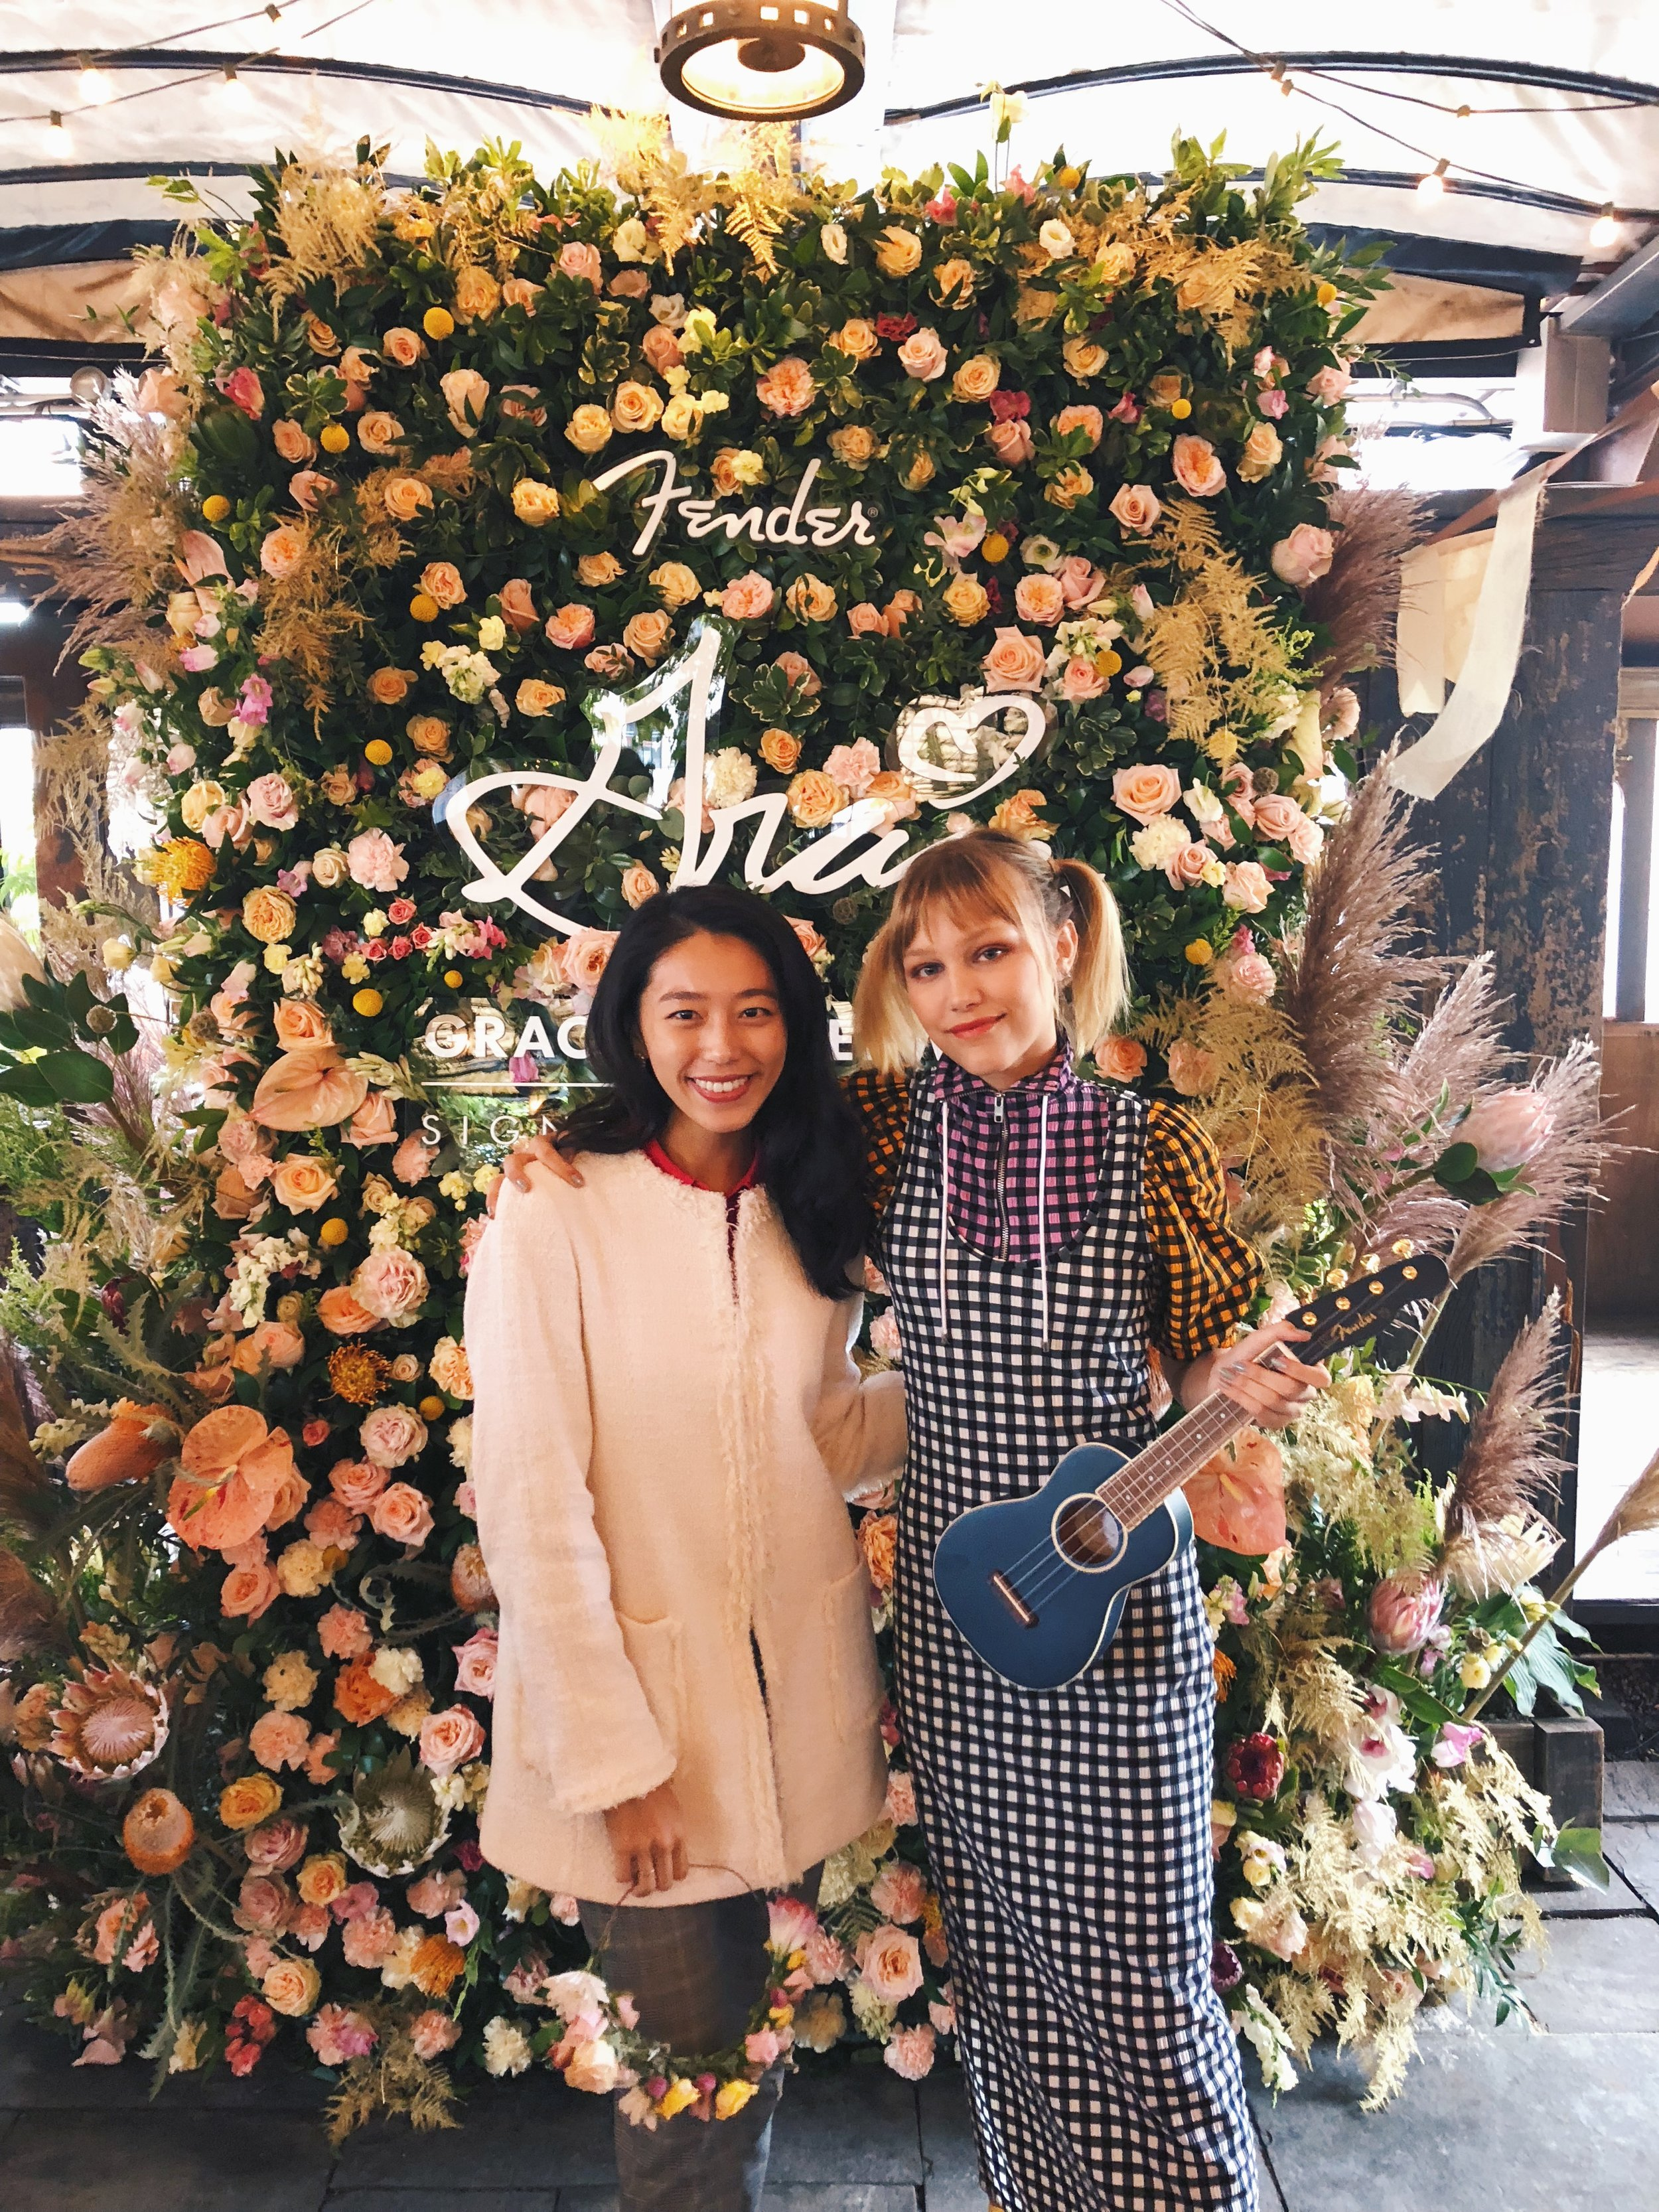 With Grace Vanderwaal. She is so sweet and talented!